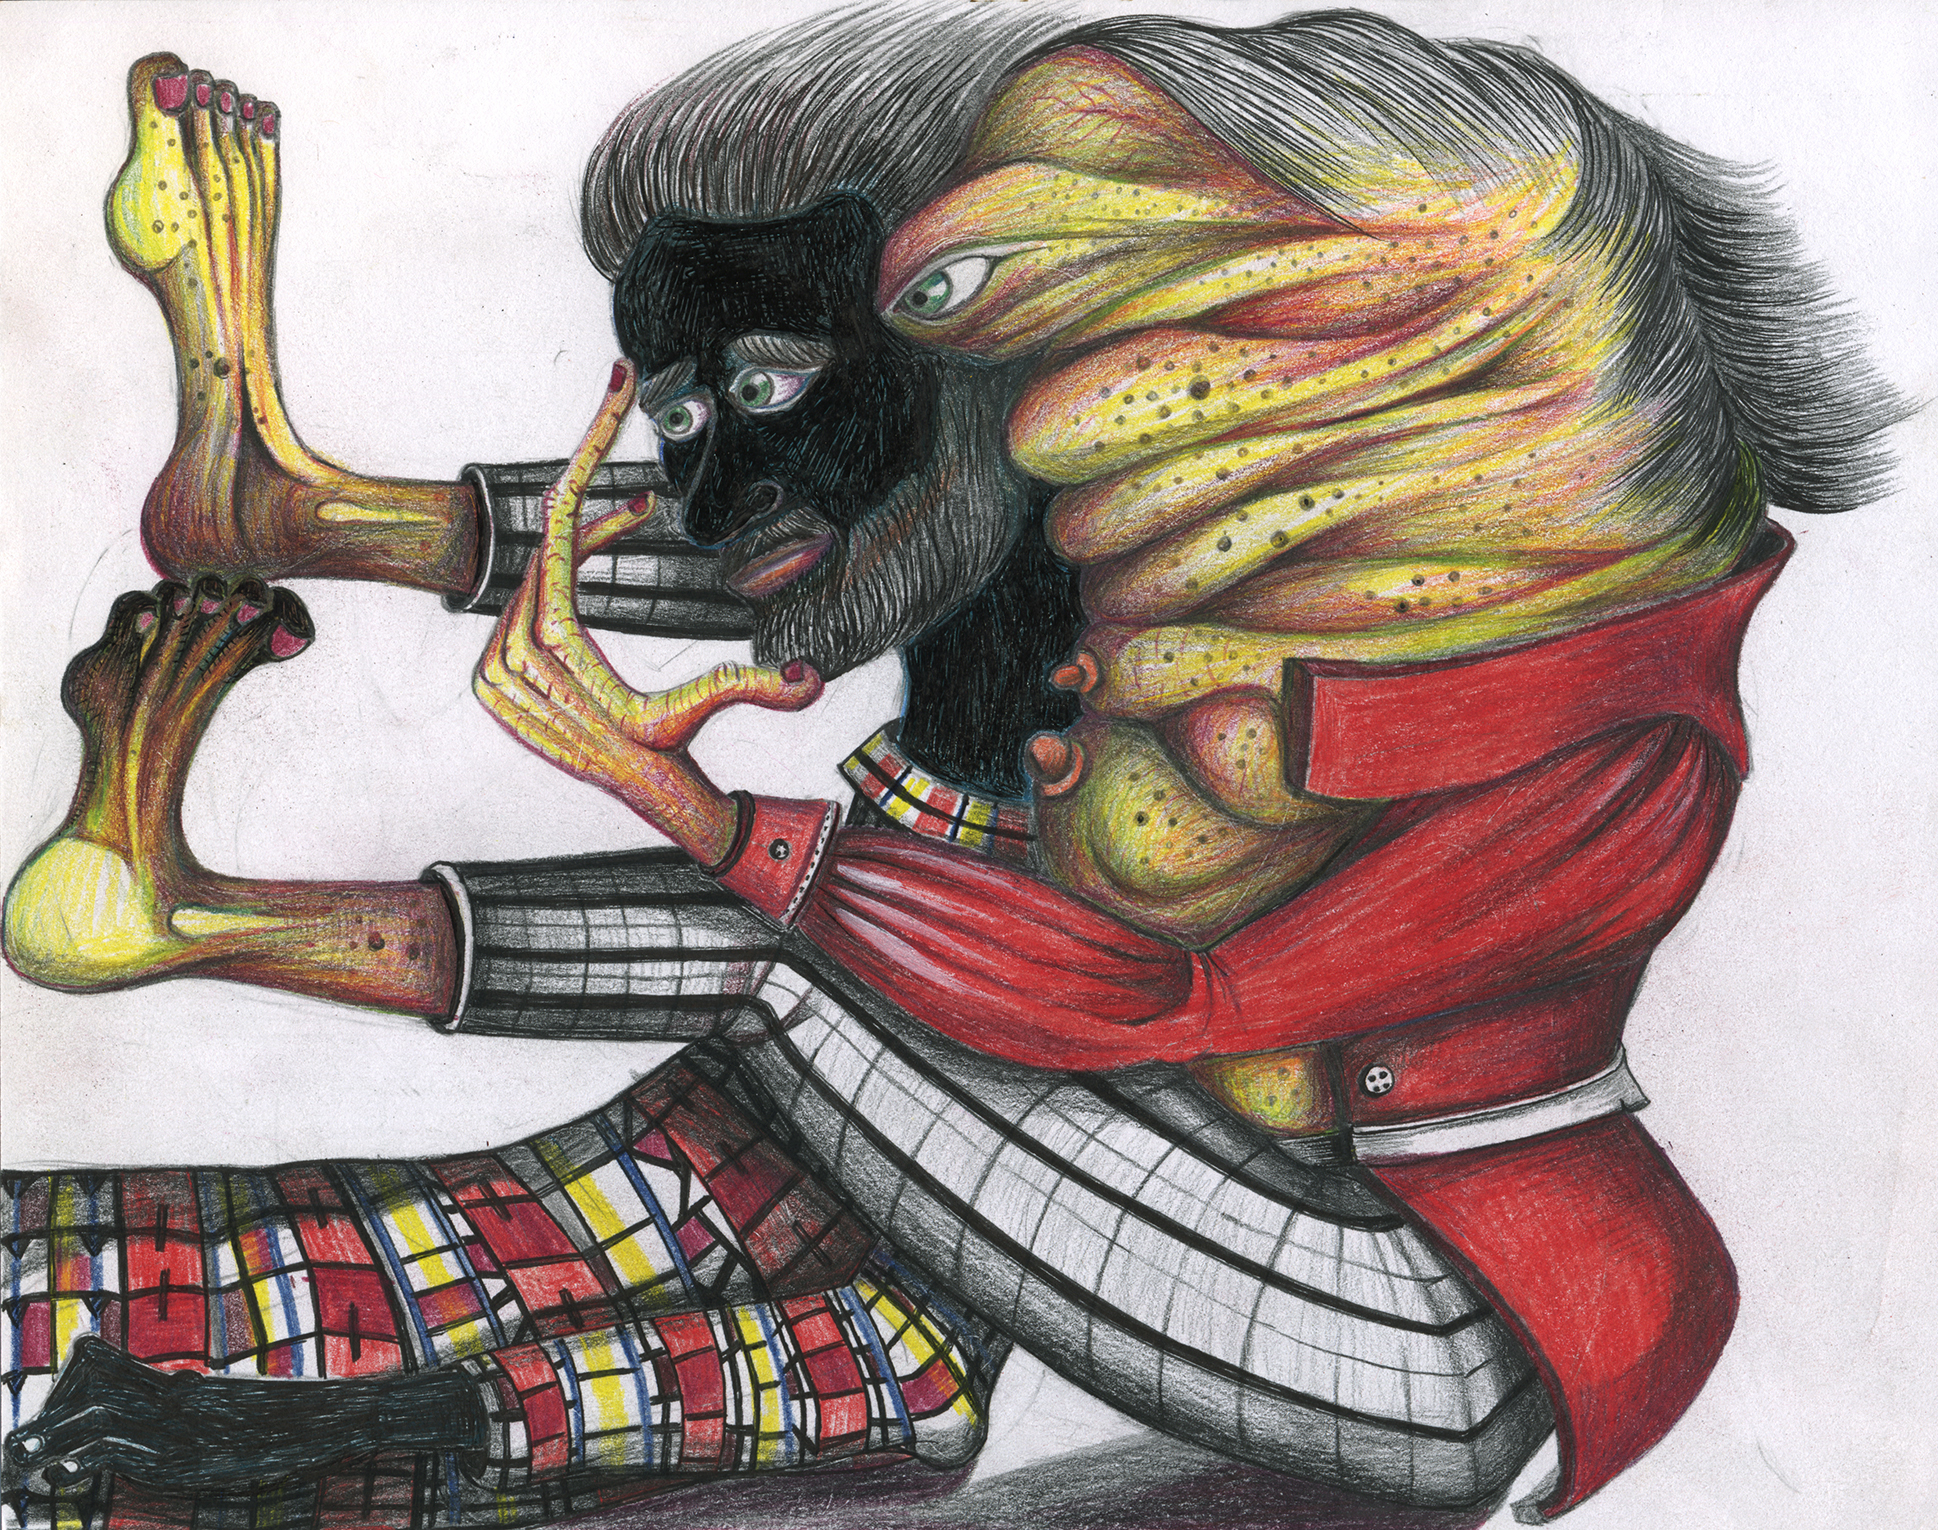 """Florine trying to get inside the head of her sensitive man,11""""x 8"""", color pencil on paper"""